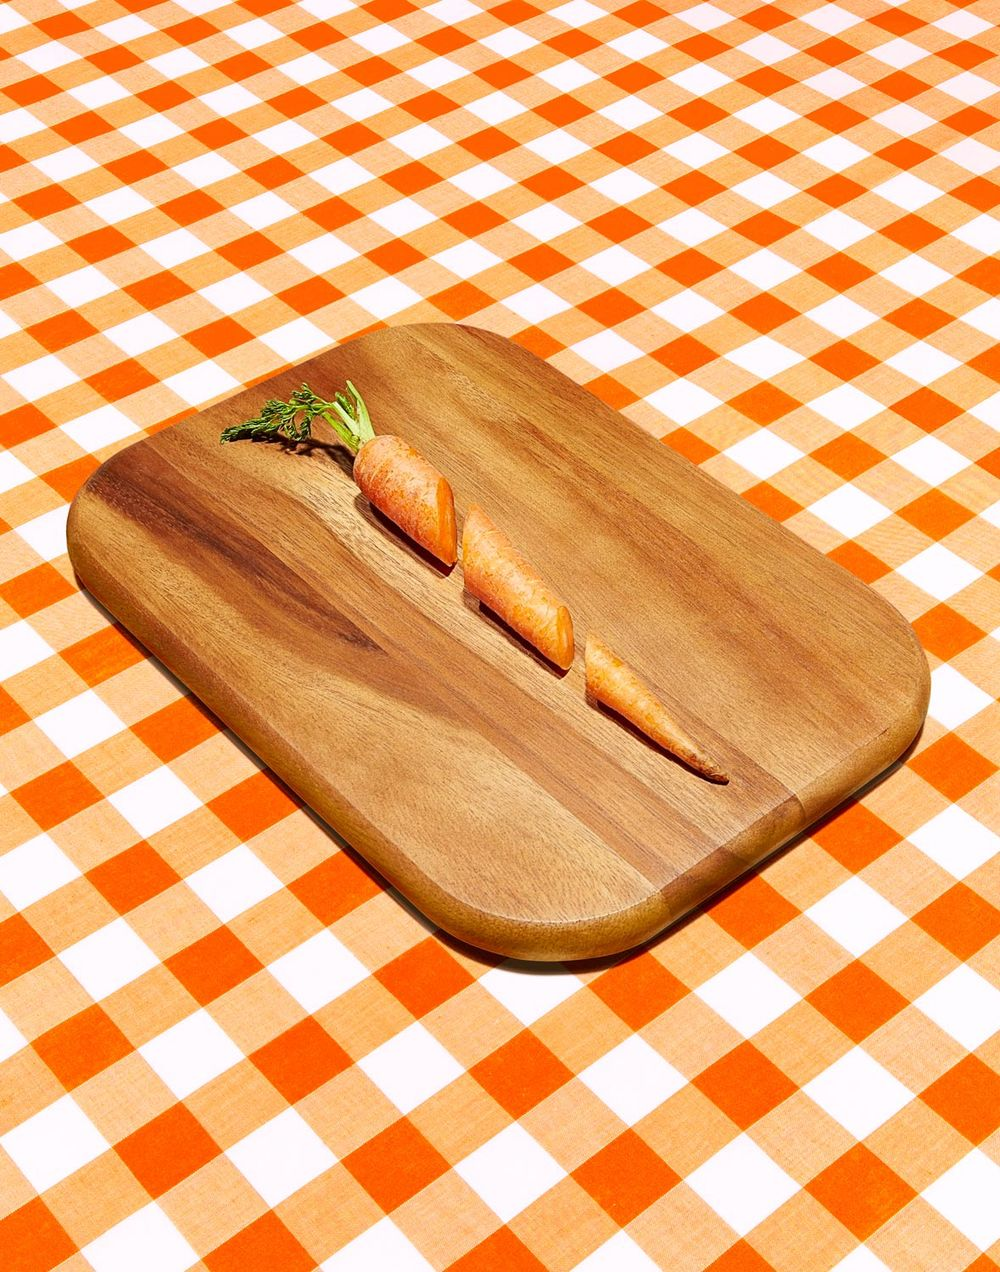 Chopped-Carrot.jpg